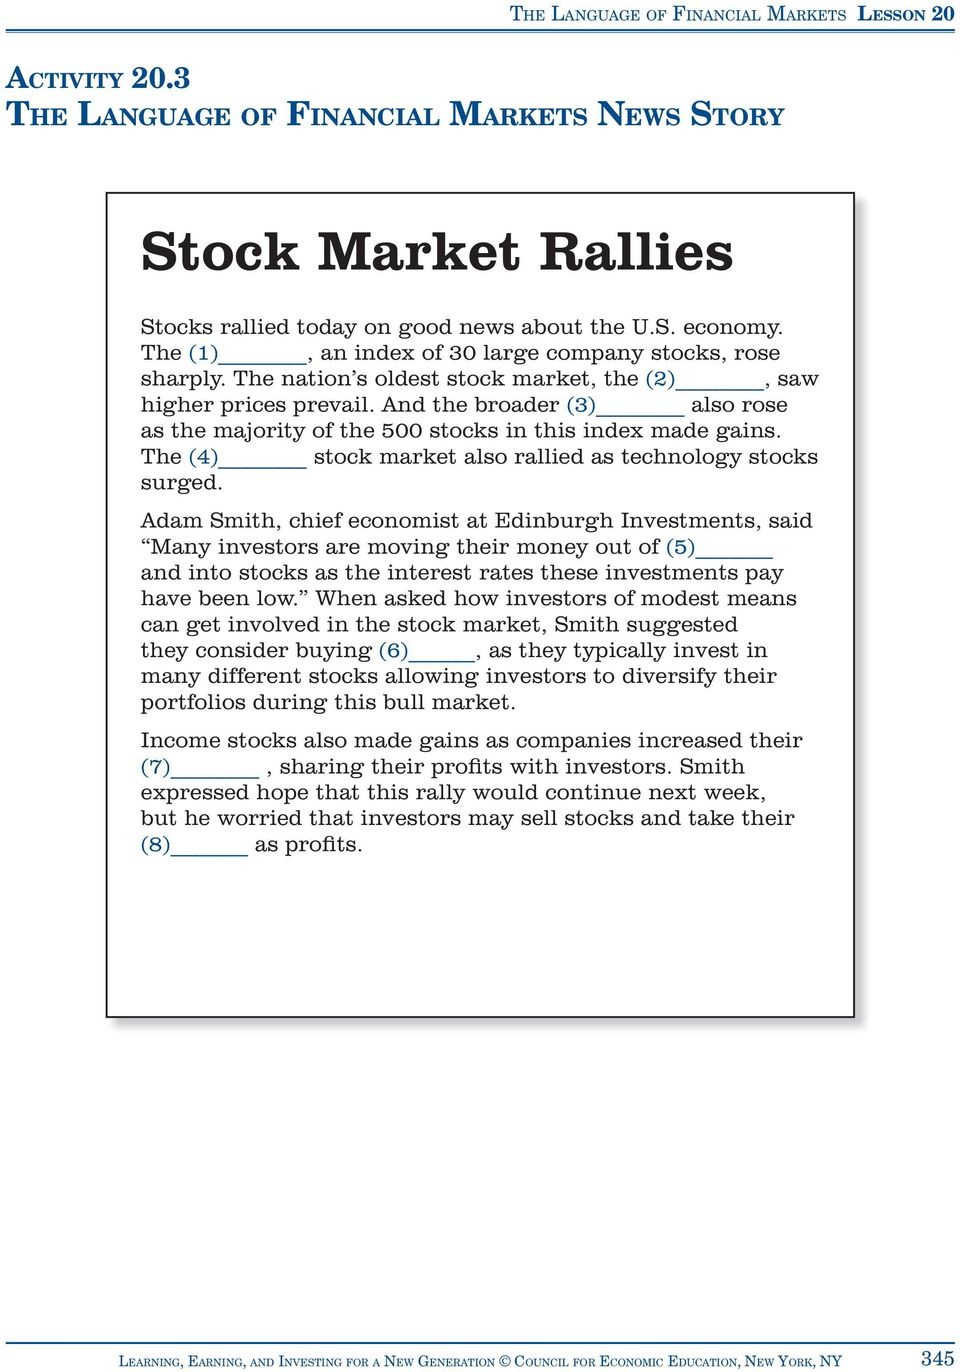 The (4) stock market also rallied as technology stocks surged.